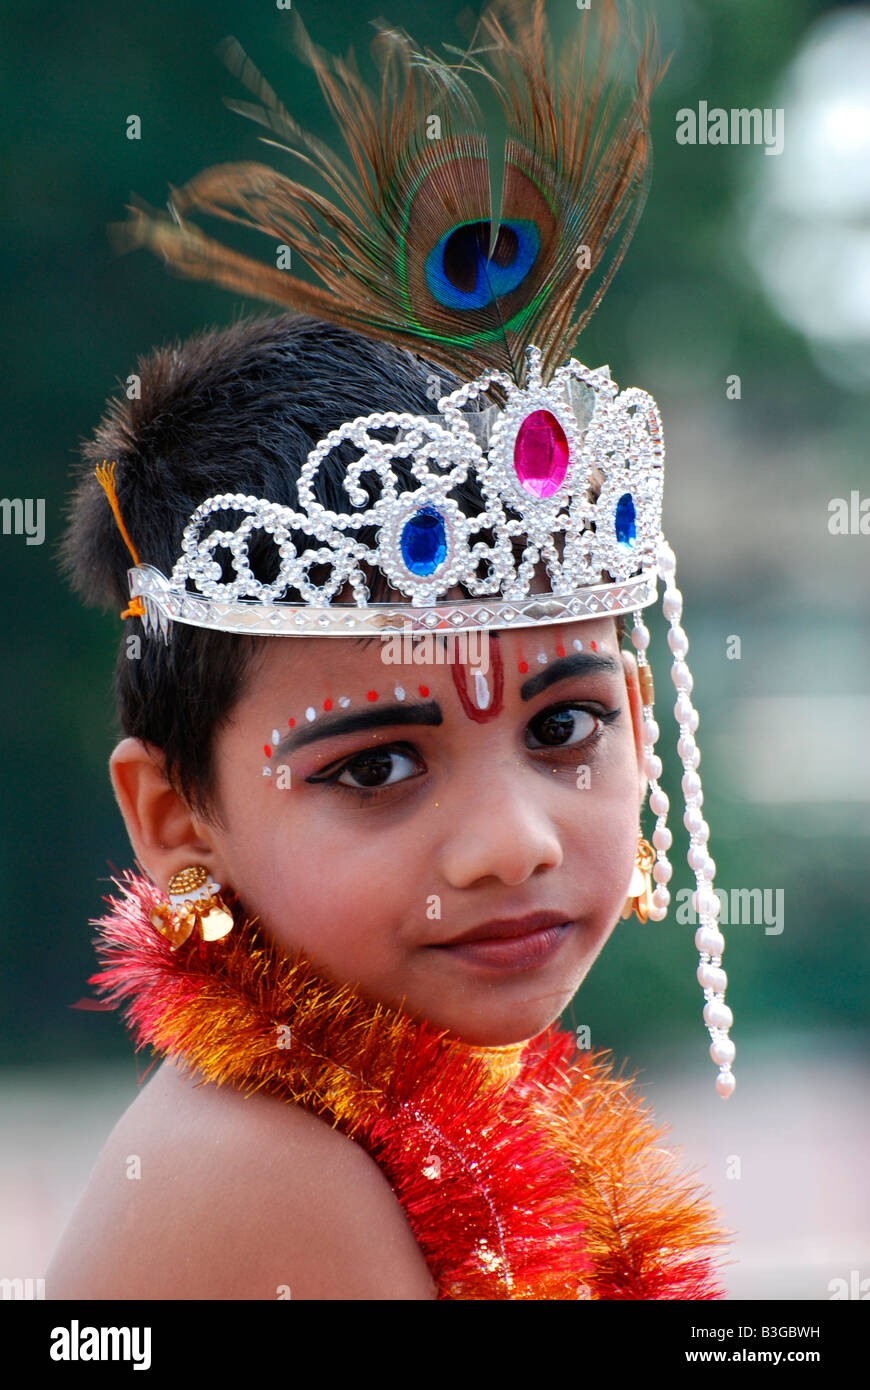 Photos Of Small Living Rooms Decorated: Little Krishna- A Small Boy Posing As Lord Krishna In A